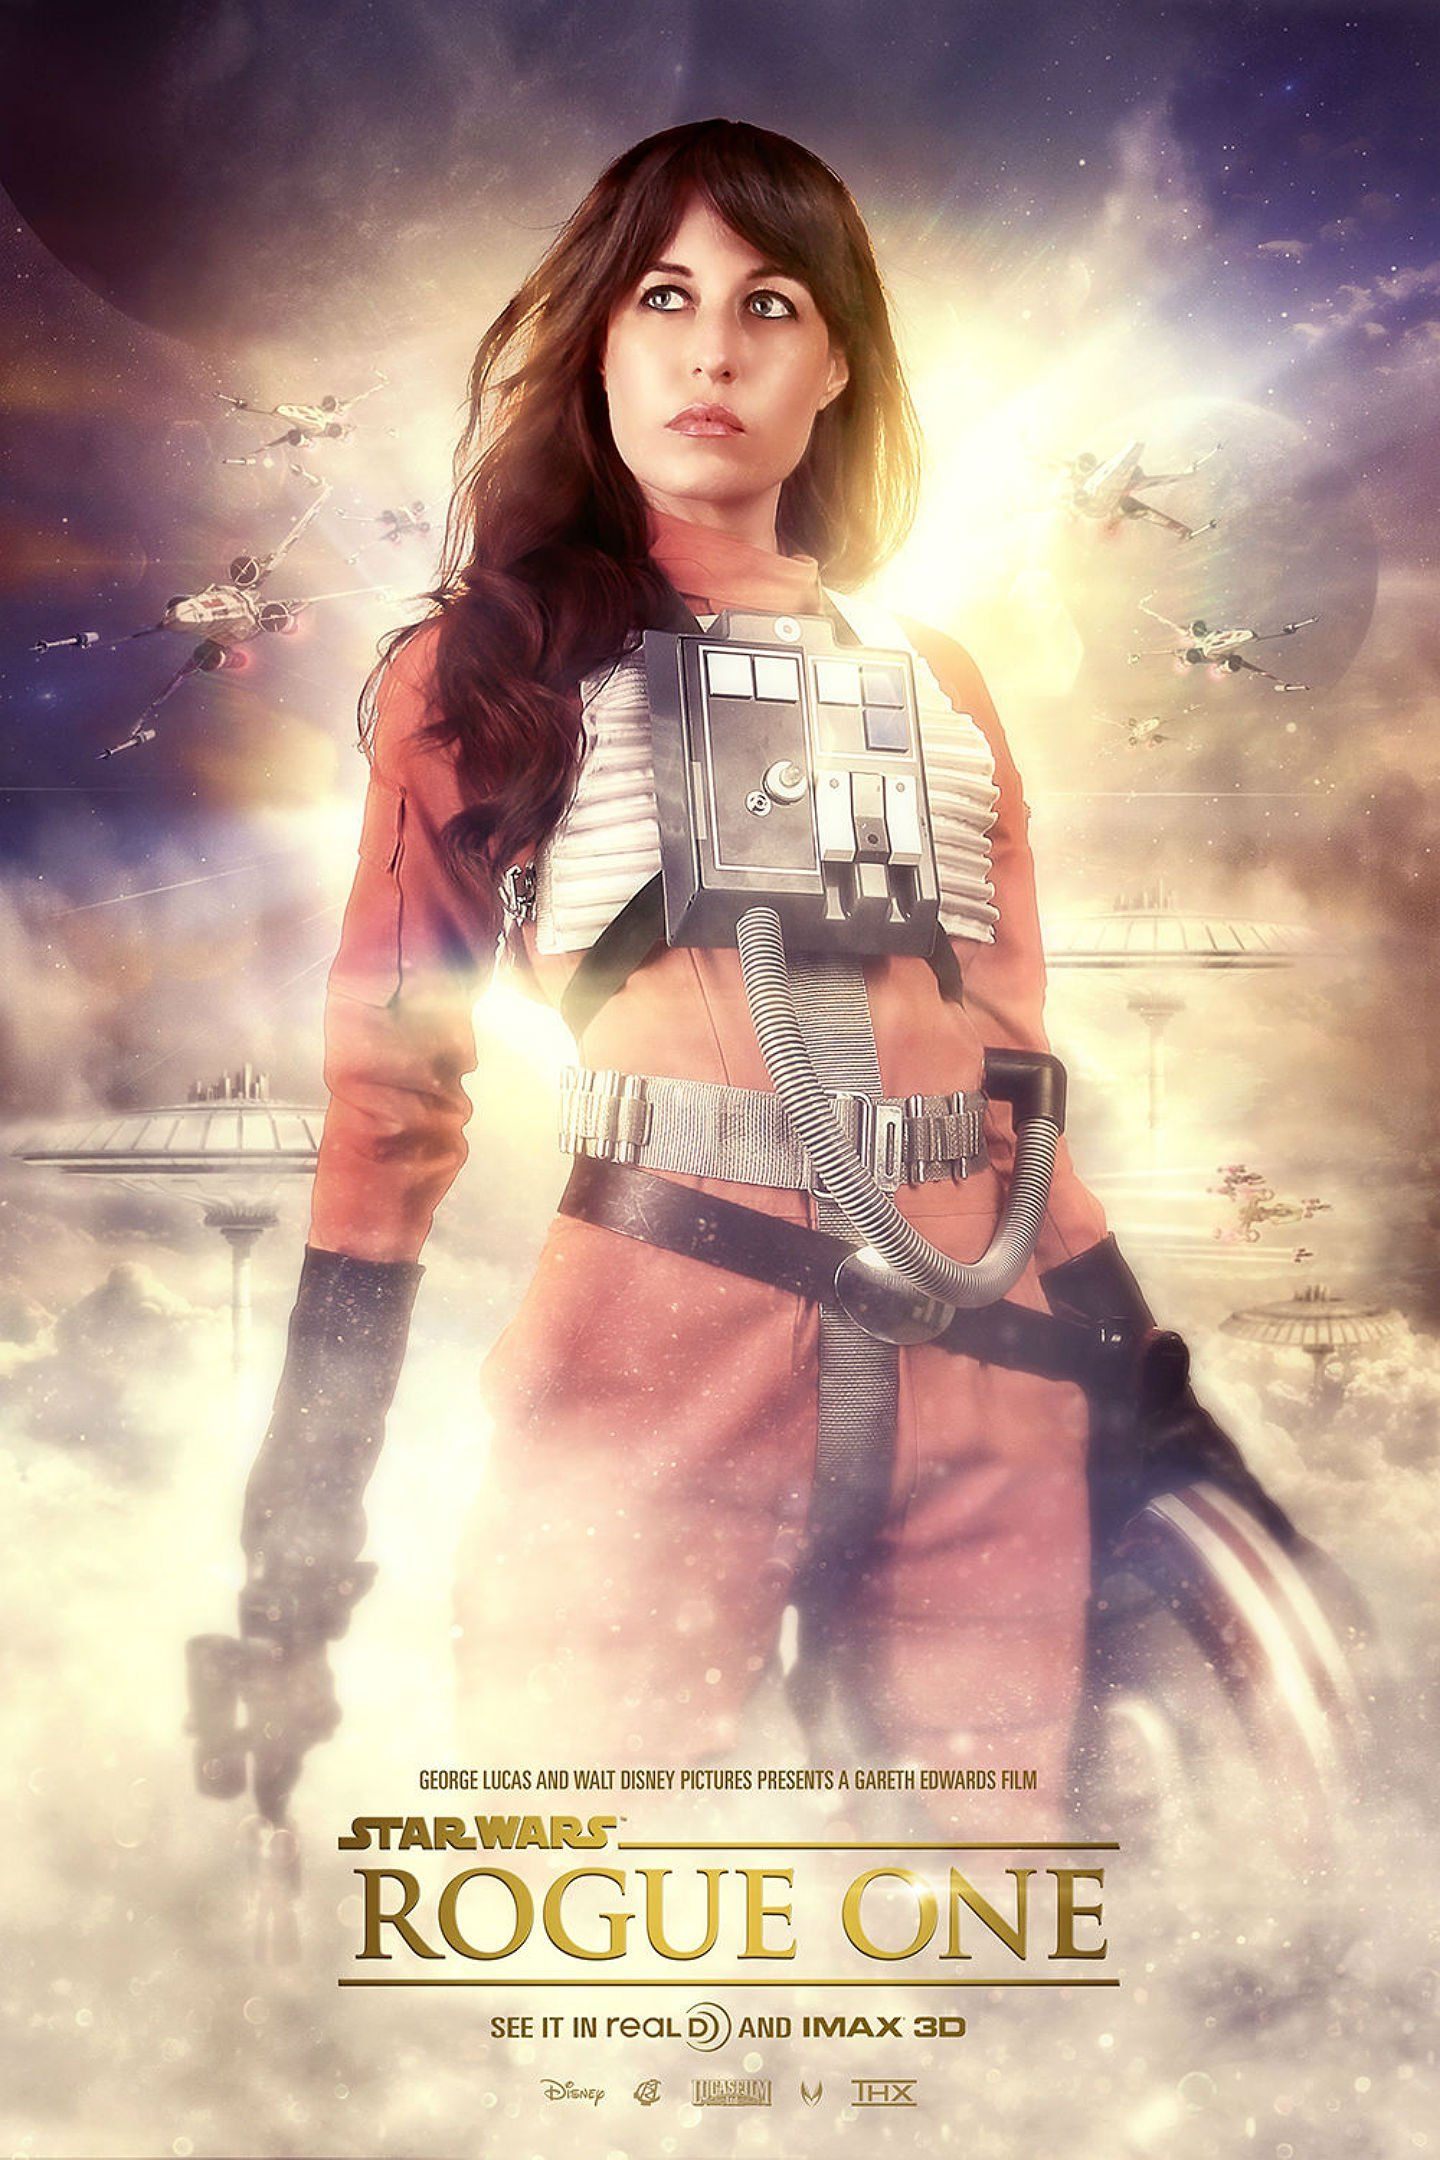 Poster design online free download - Watch Rogue One A Star Wars Story 2016 Streaming Online For Free Download Digital